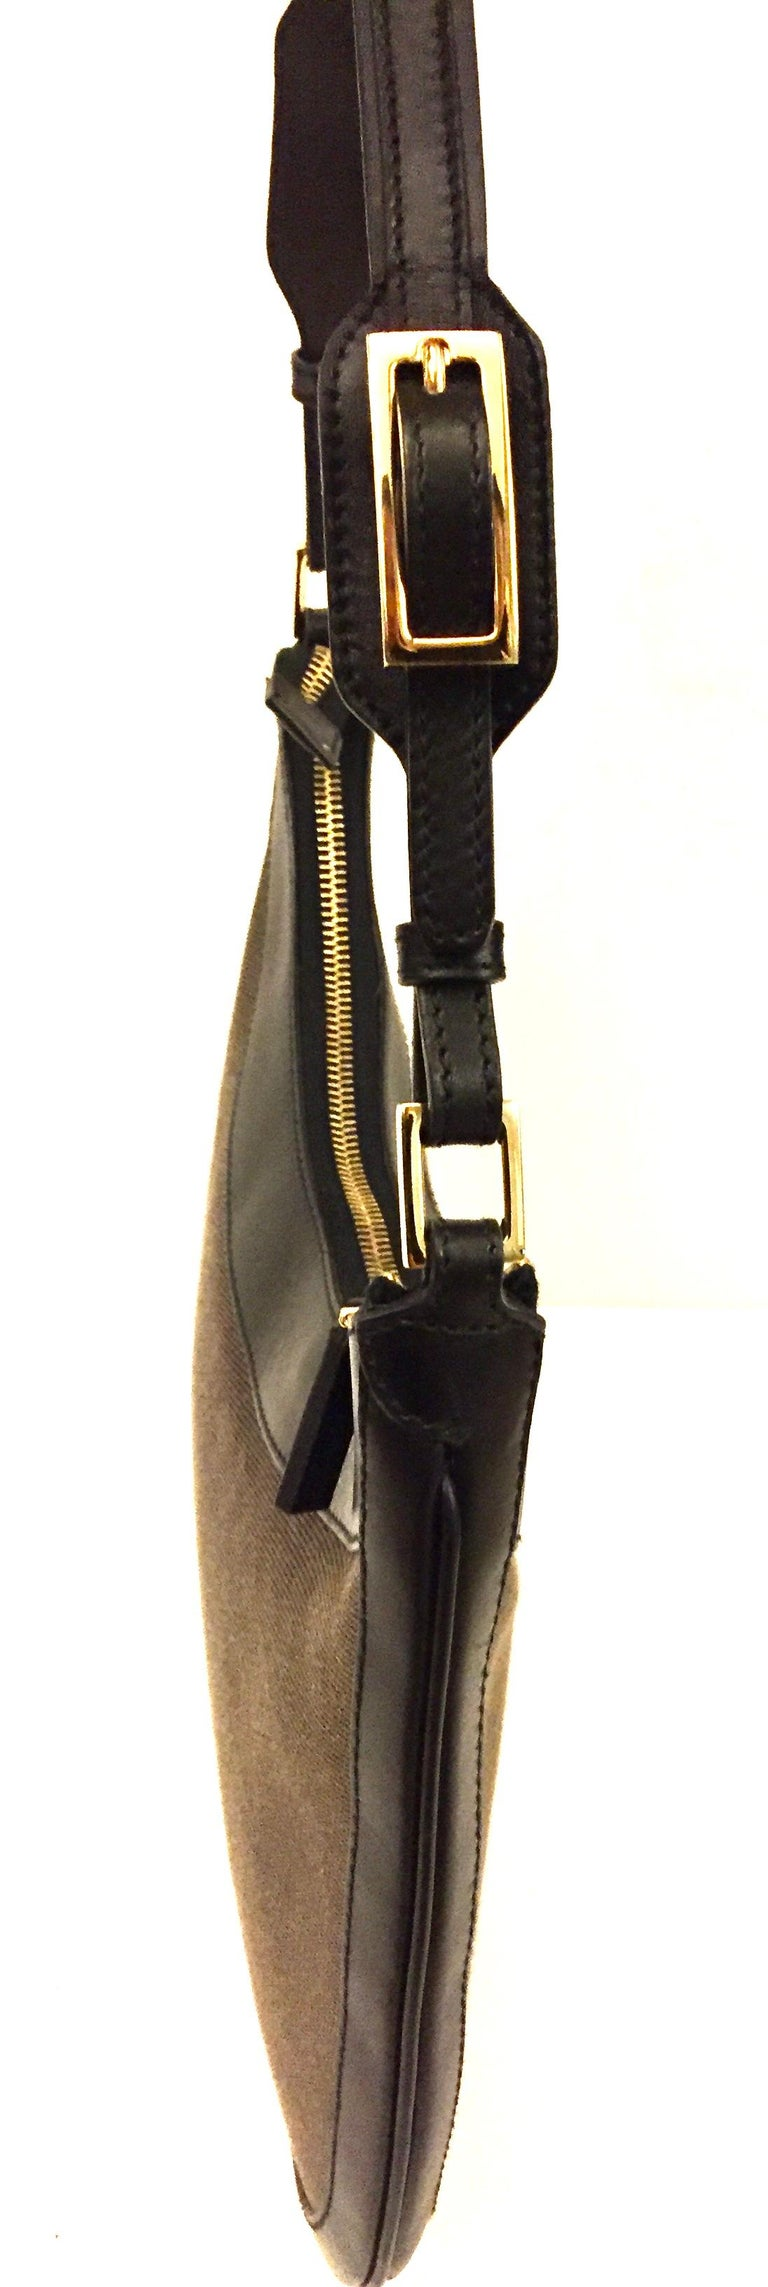 Women's Gucci black leather and brown canvas hobo style bag